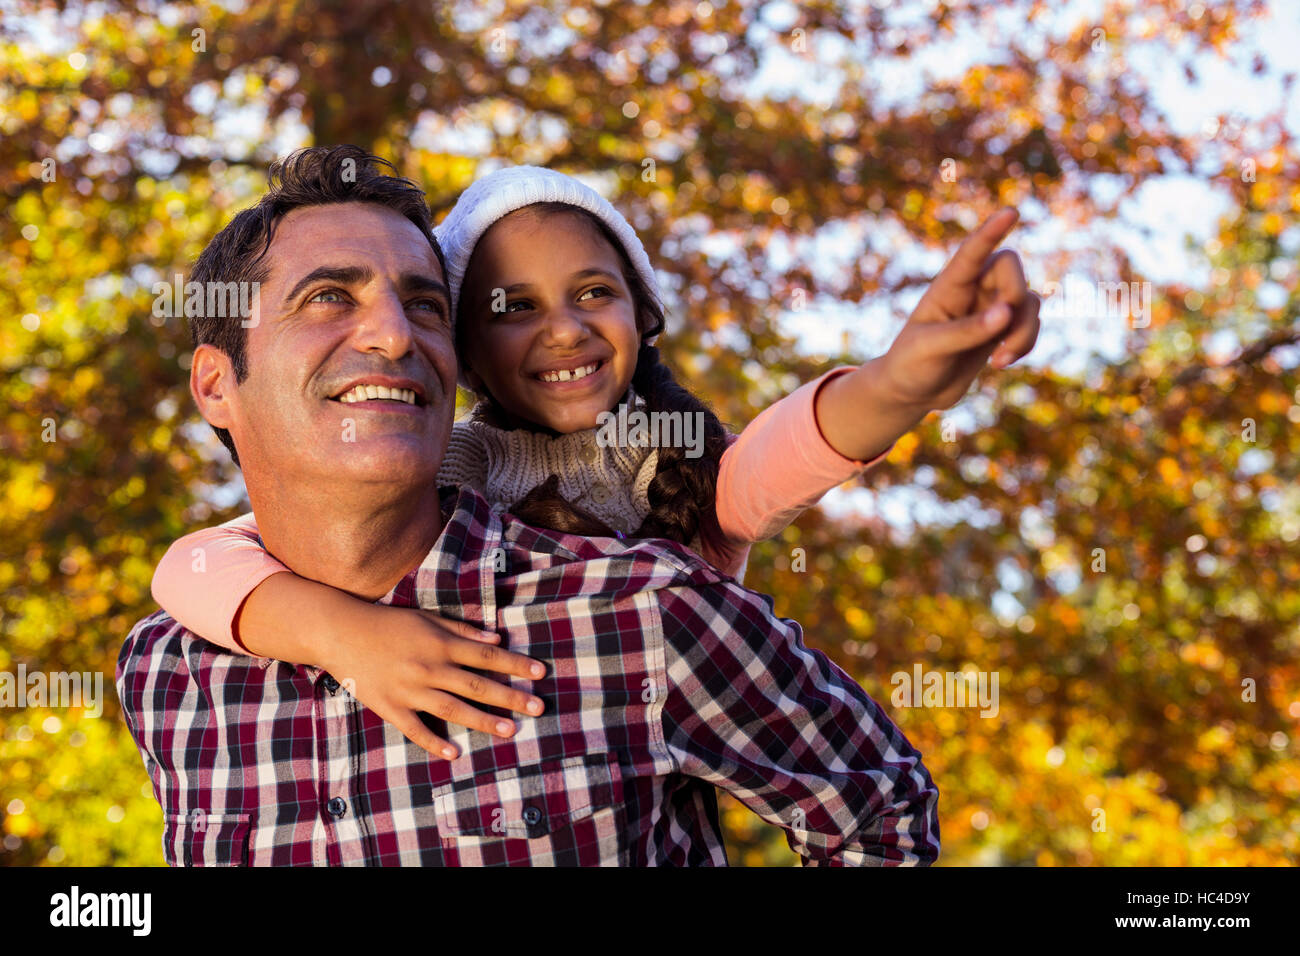 Daughter gesturing while piggybacking with father at park - Stock Image